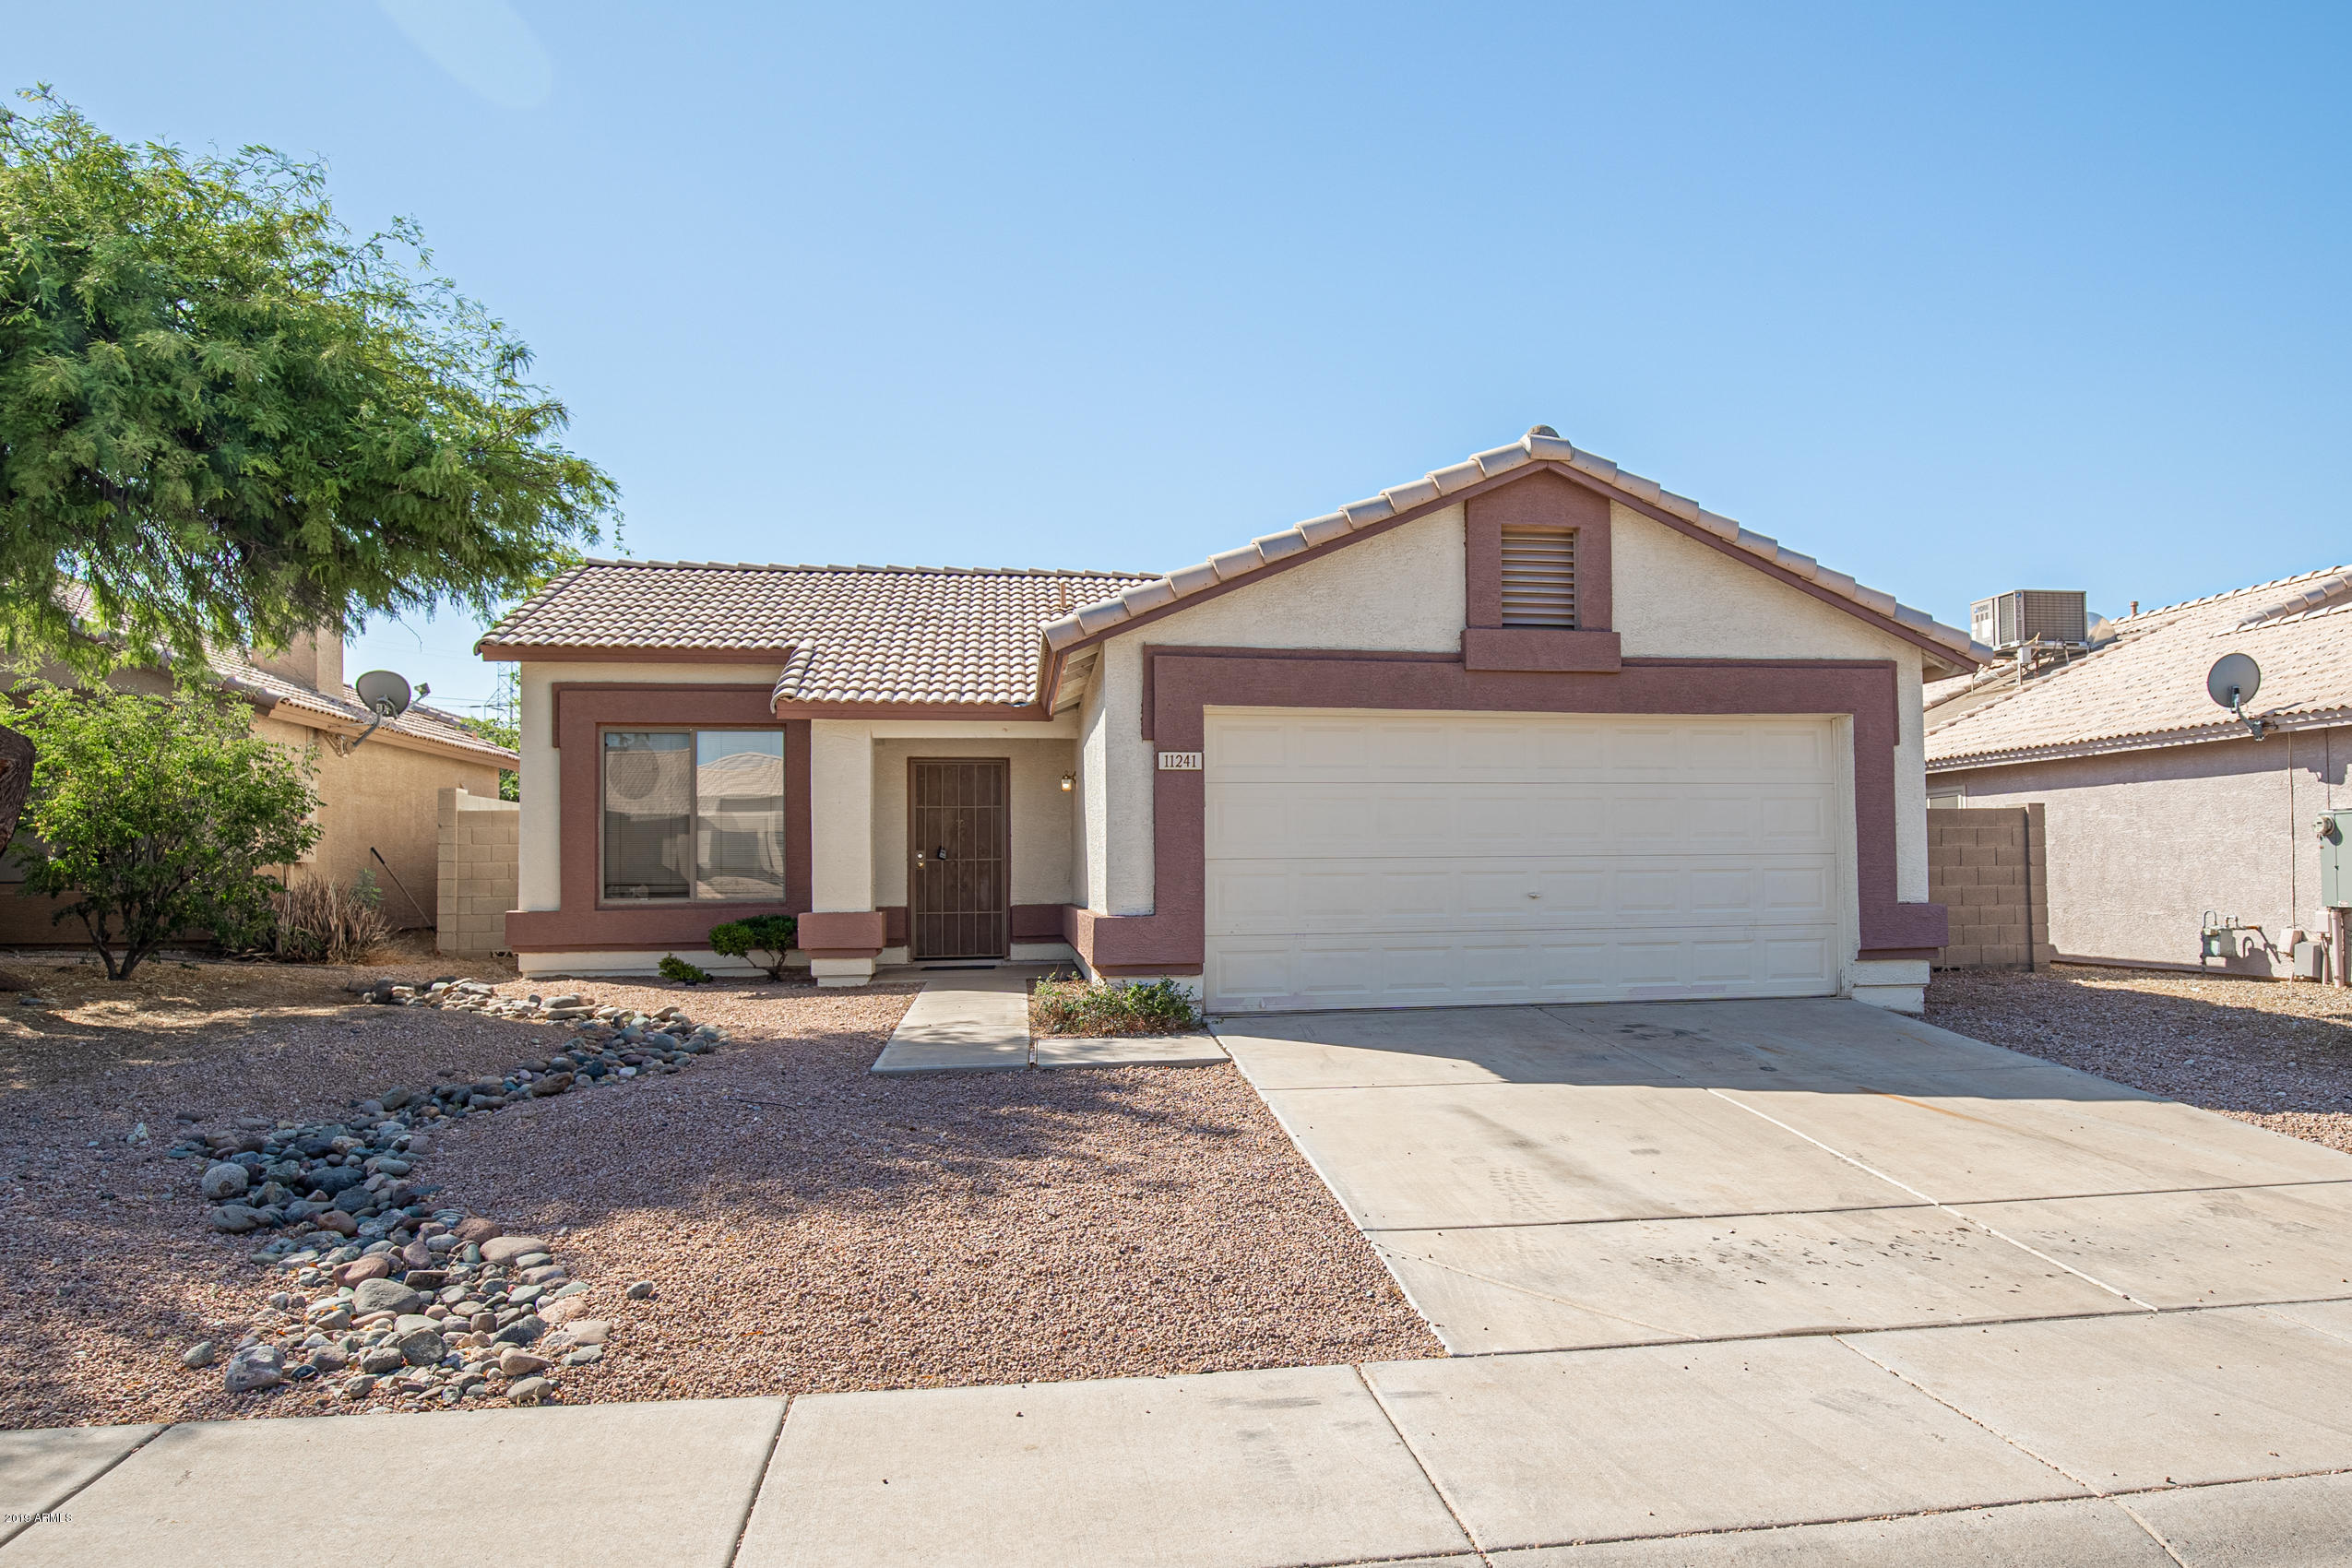 11241 W RUTH Avenue, Peoria in Maricopa County, AZ 85345 Home for Sale